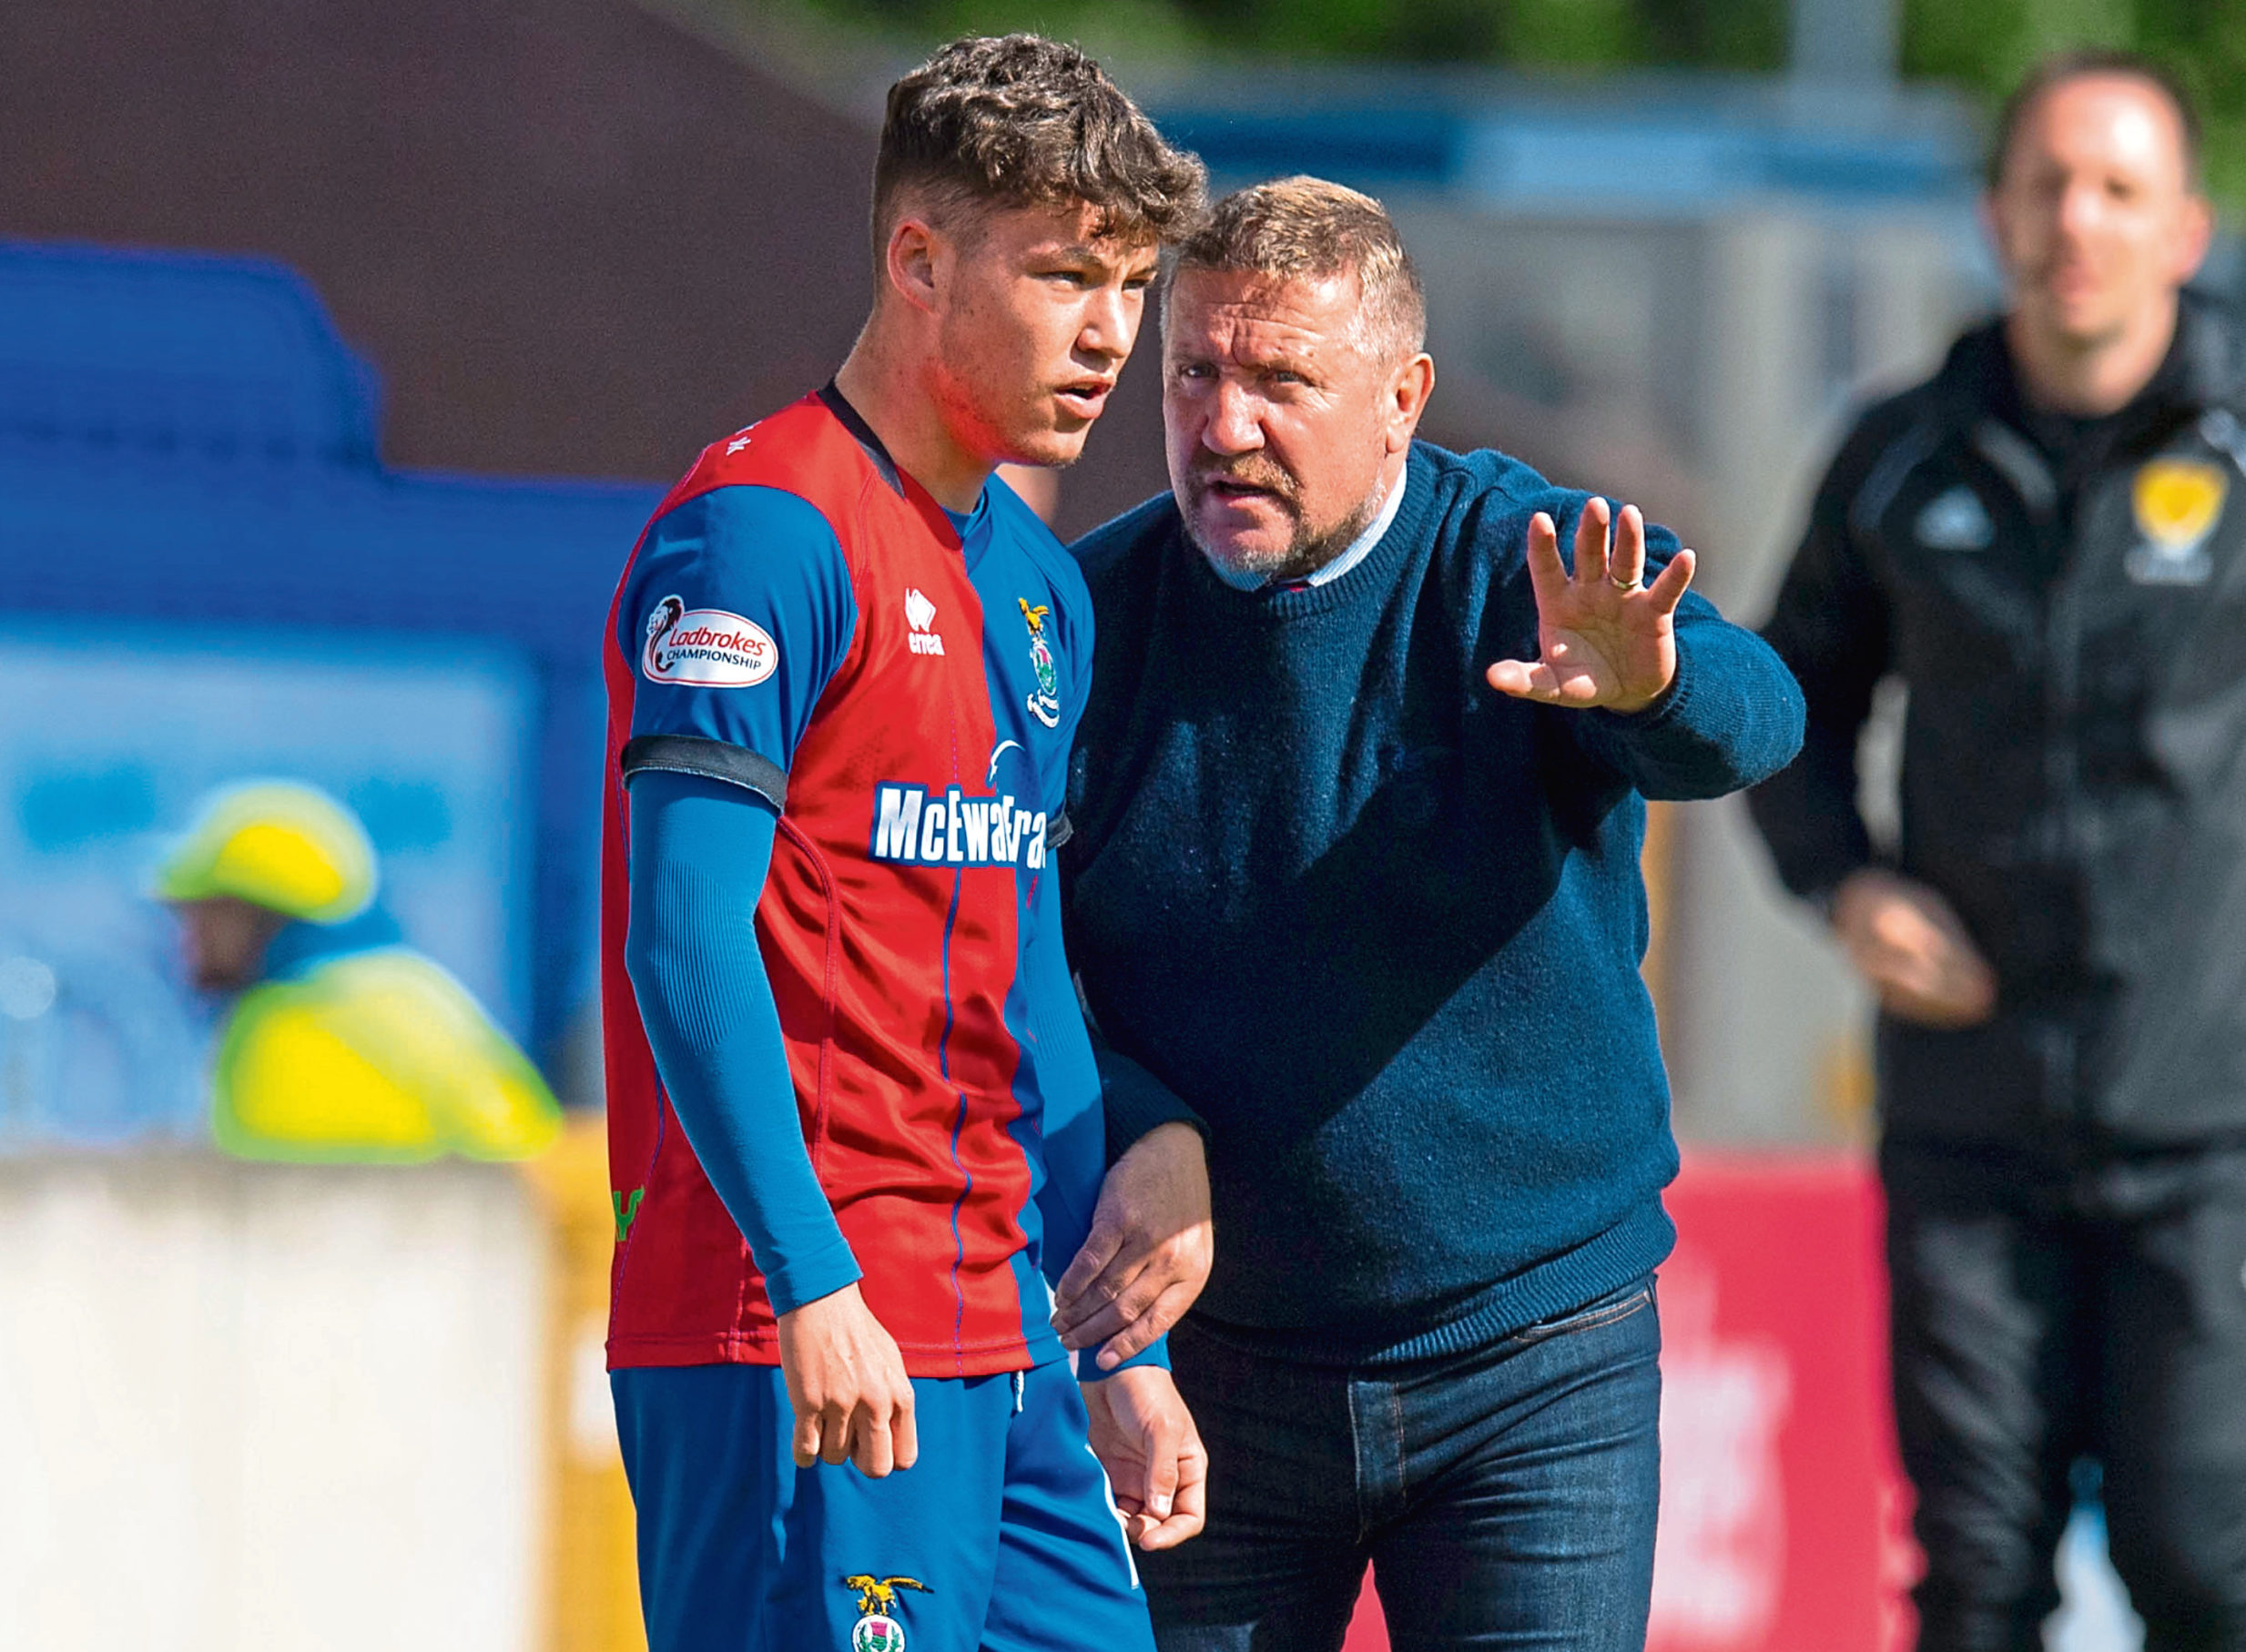 Inverness Caley had wanted their colts to play in the Highland ranks.